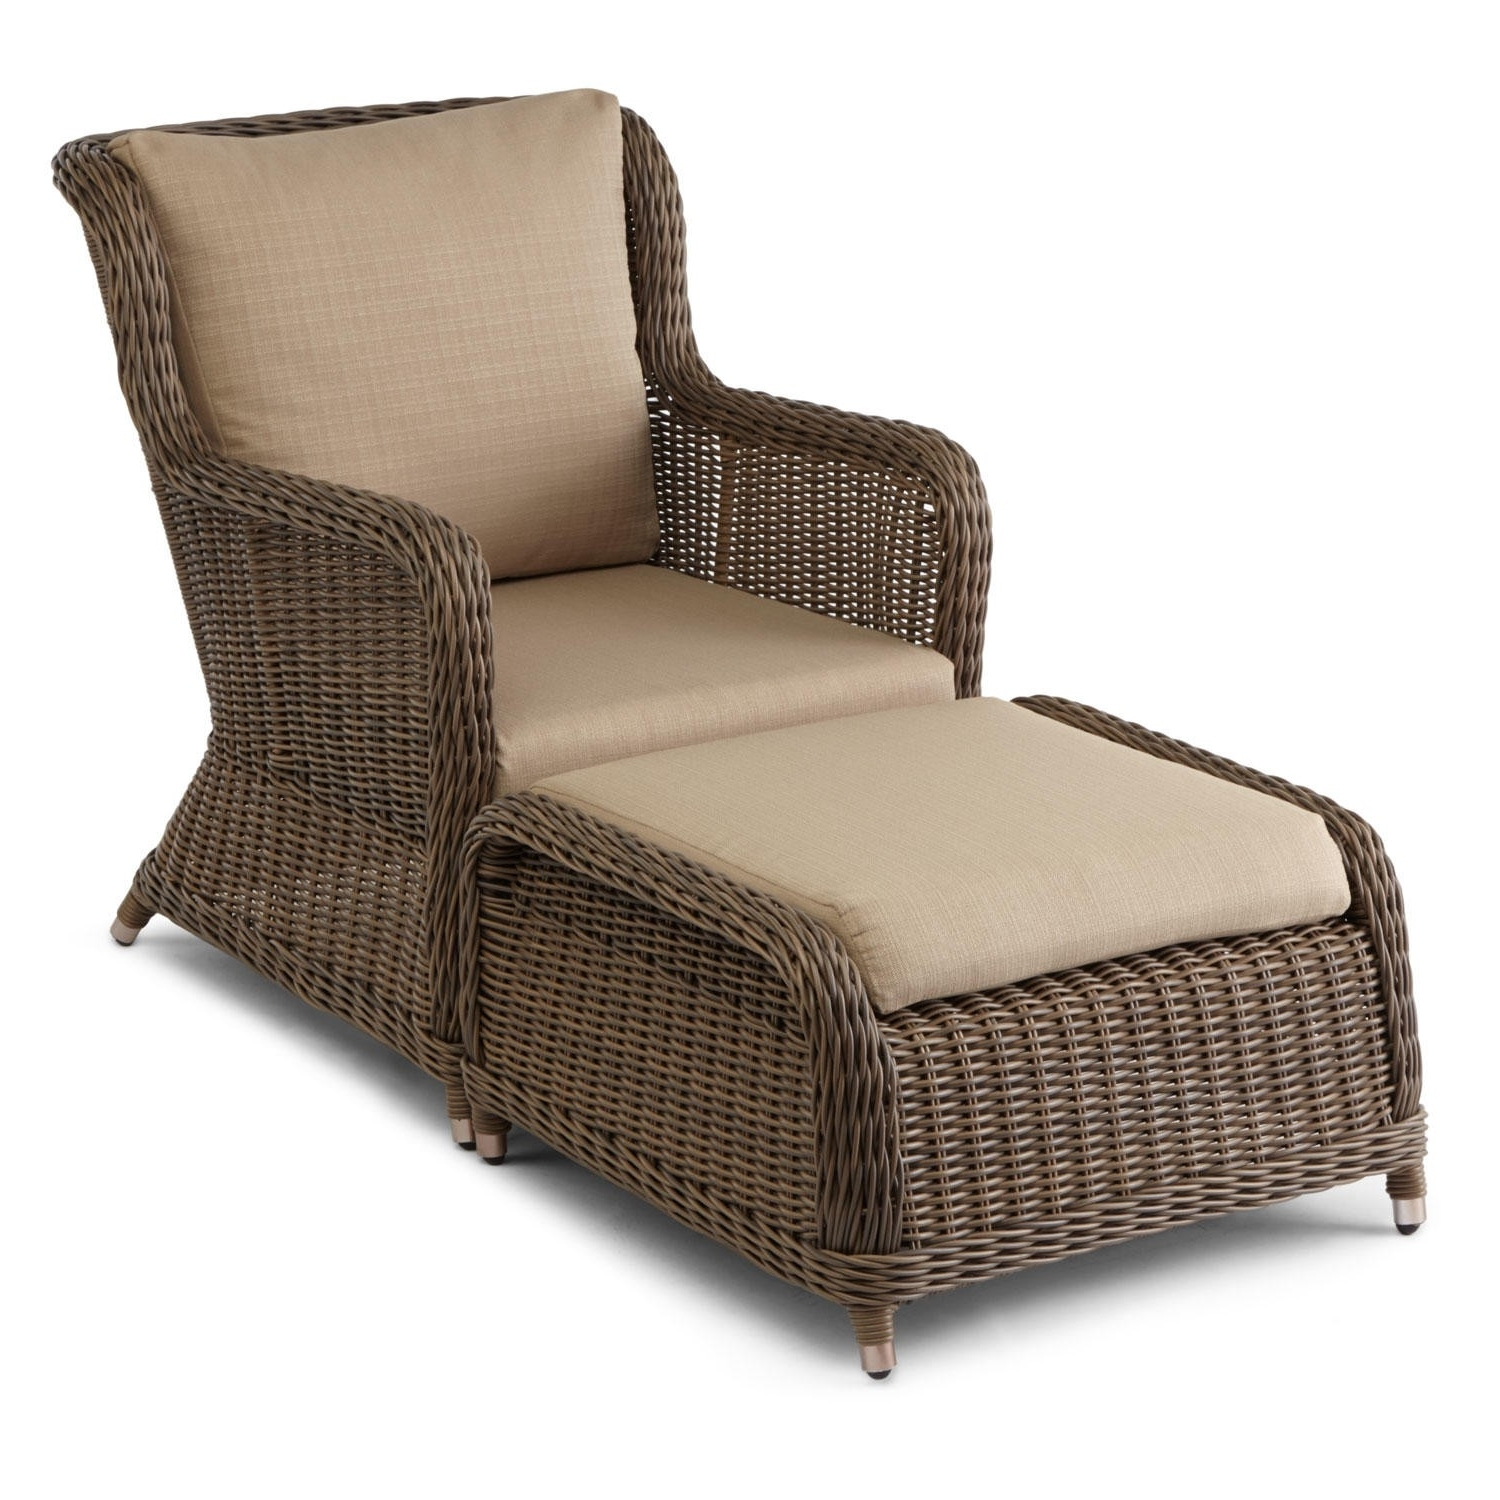 Chairs With Ottoman With Regard To Most Up To Date Wicker Chair With Ottoman – Modern Chairs Quality Interior  (View 6 of 20)